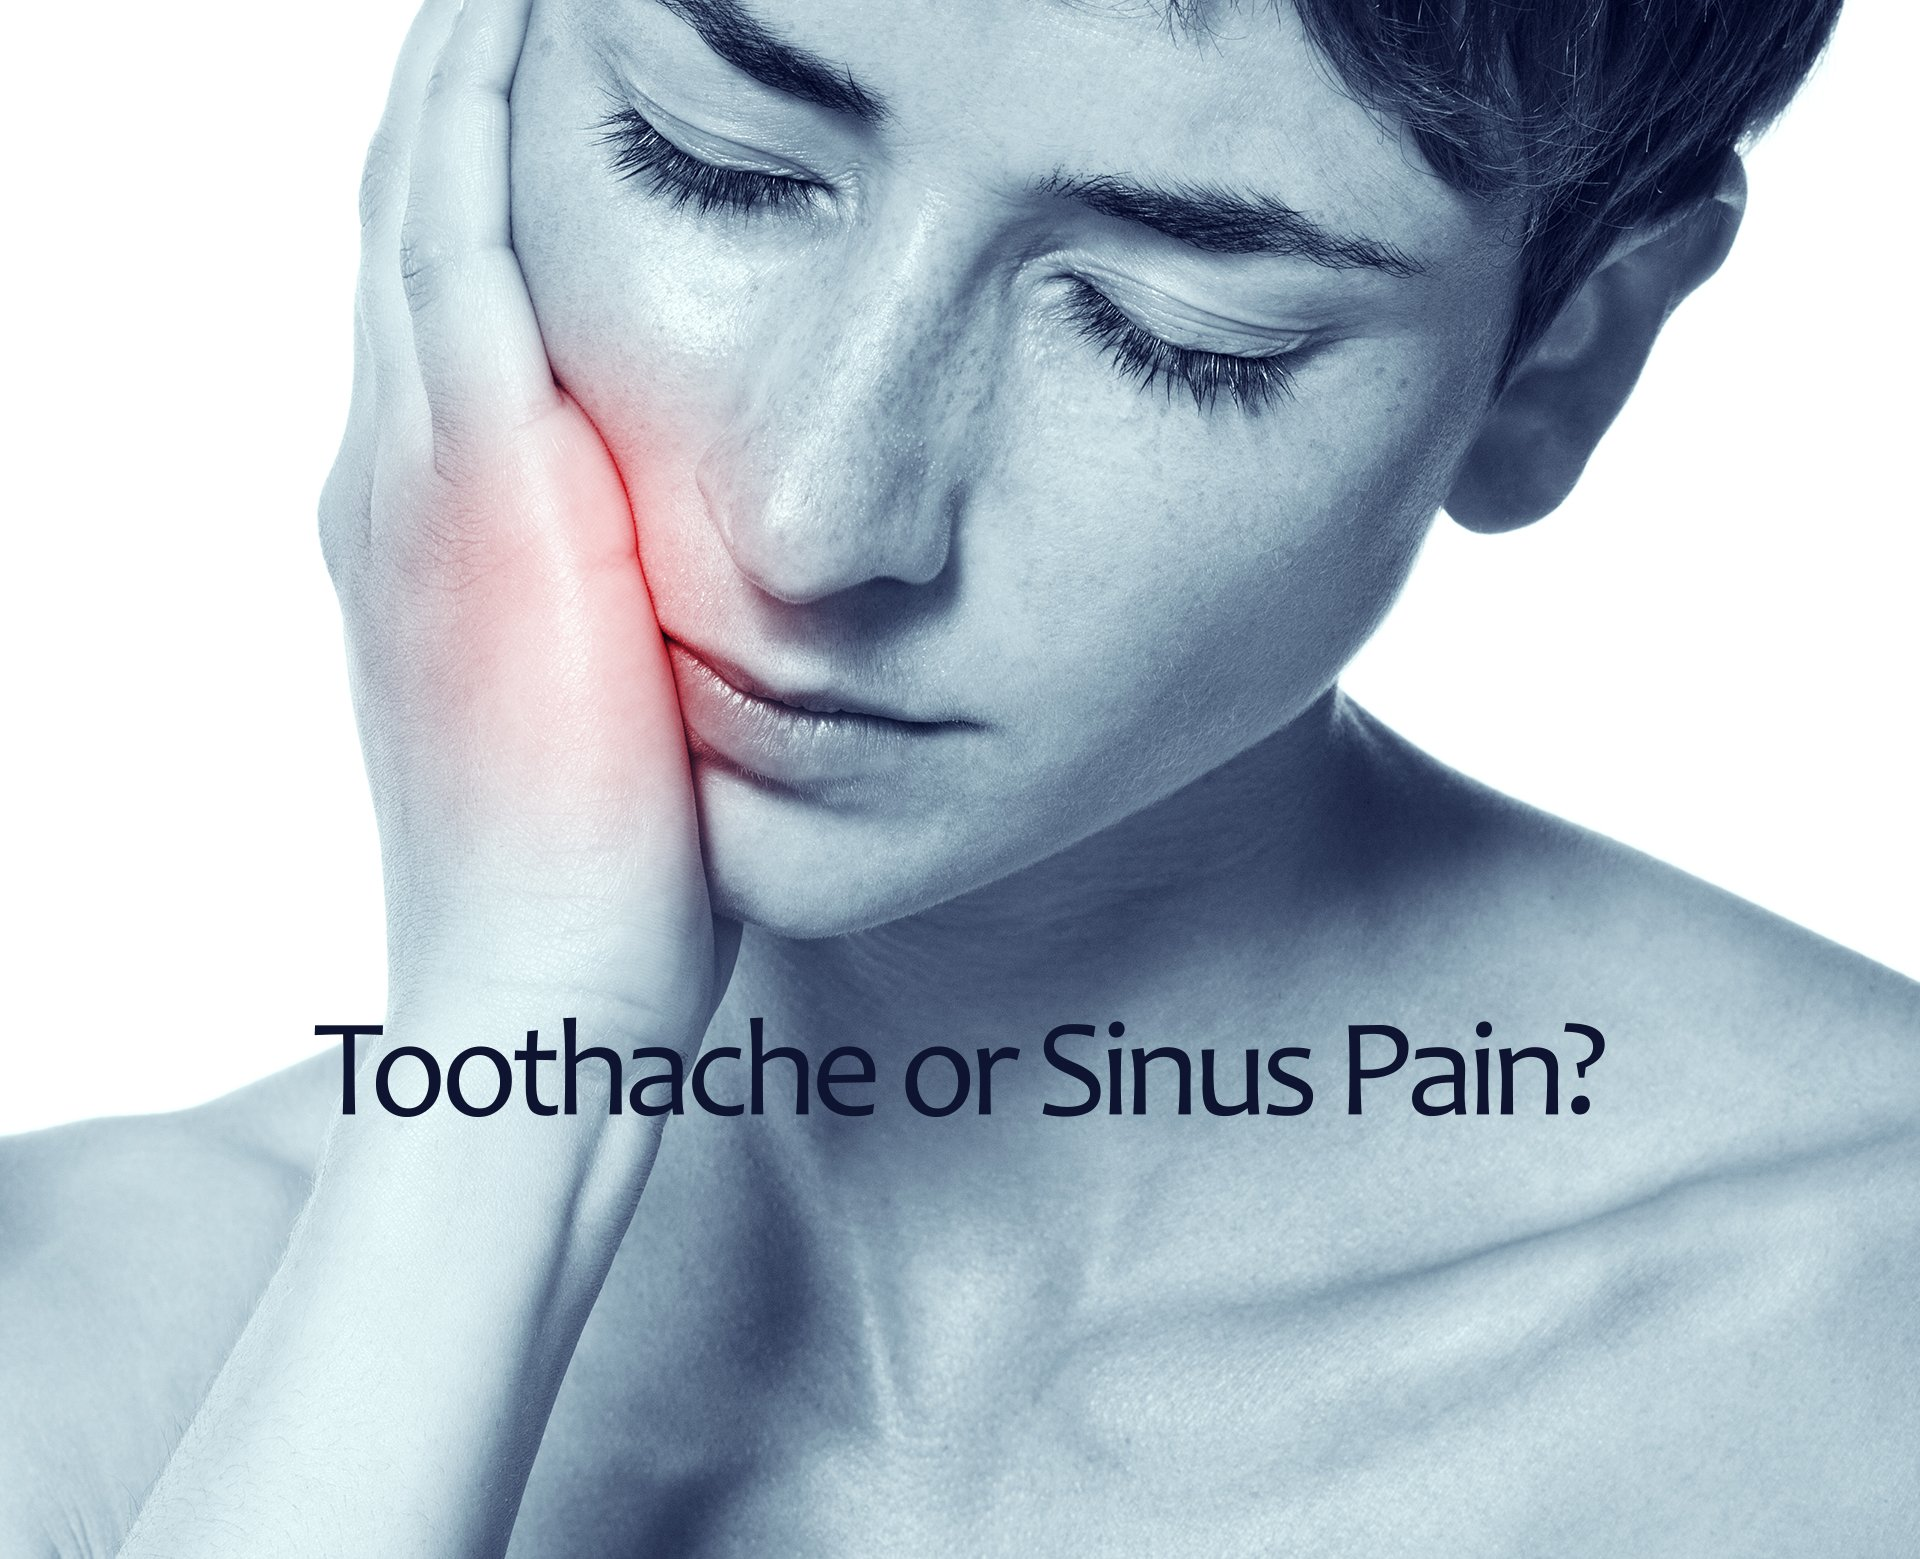 Toothache or Sinus Pain?